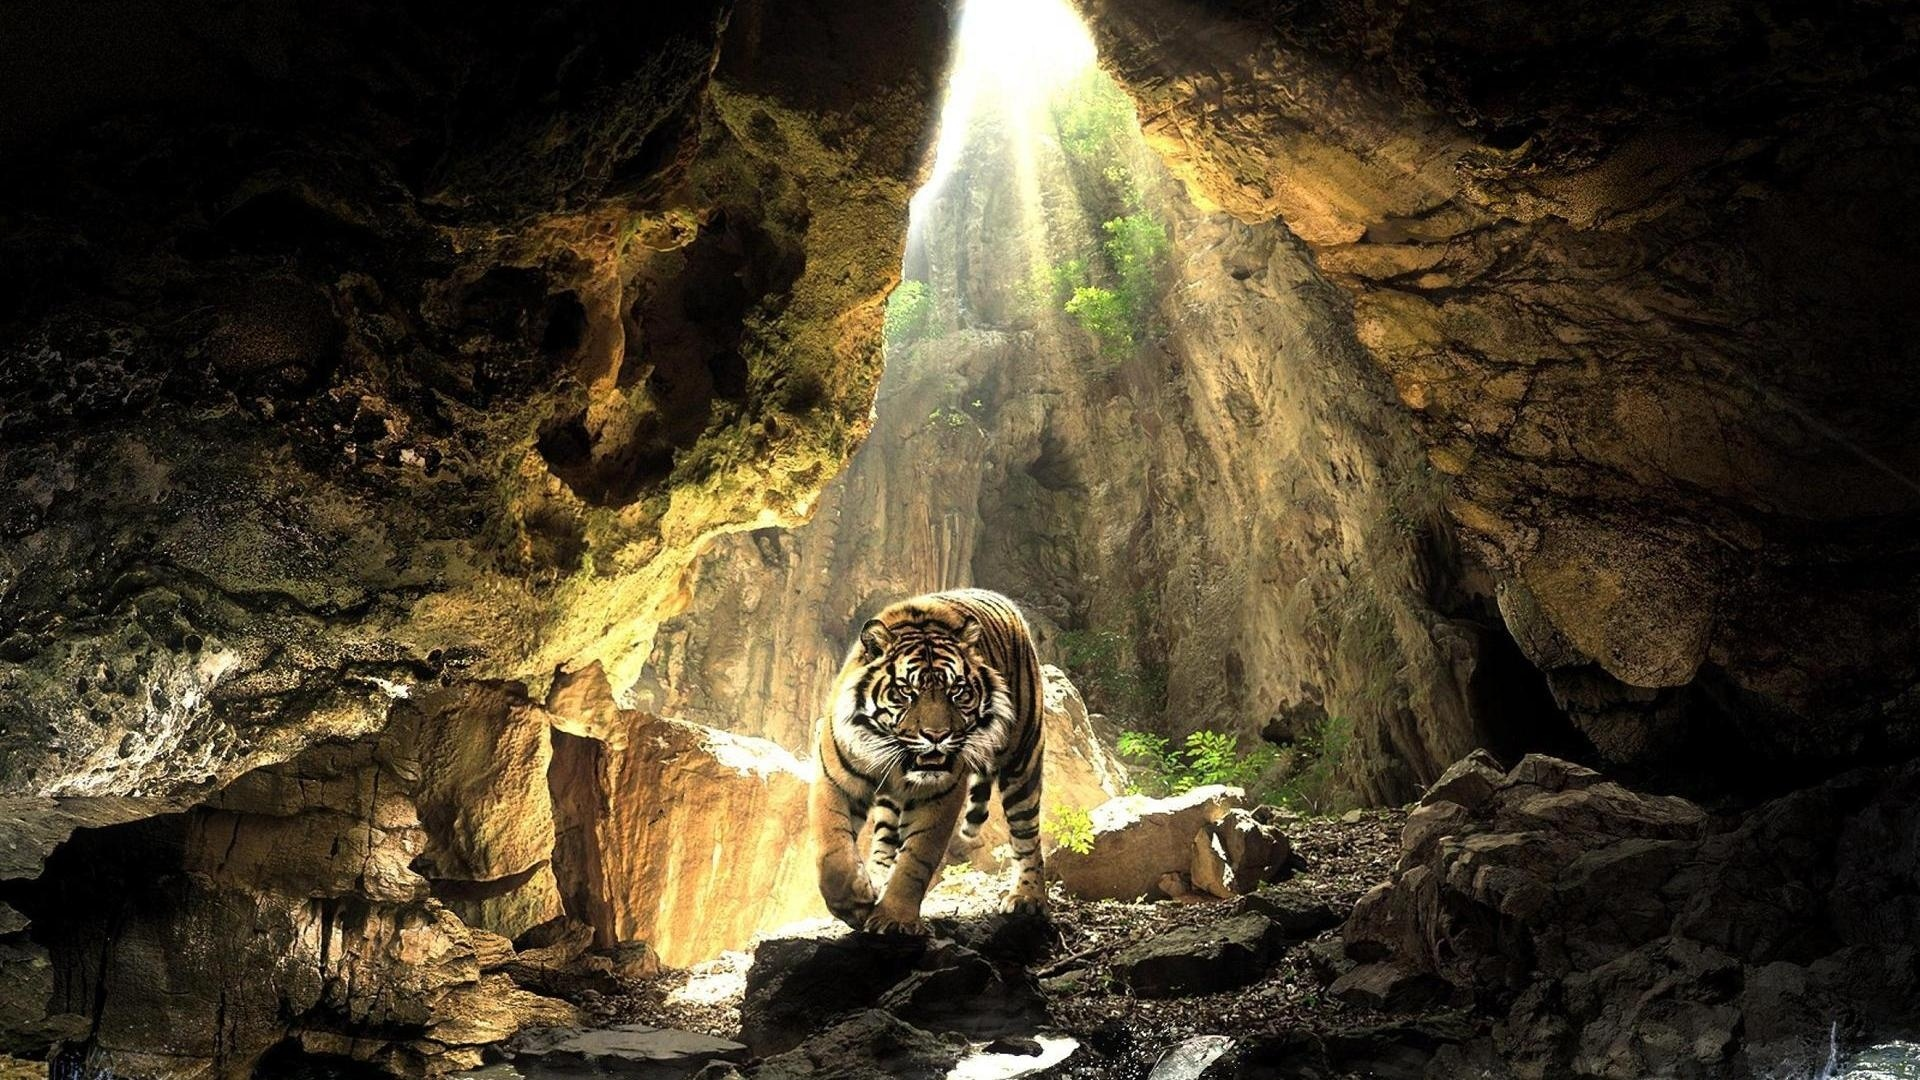 202 cave hd wallpapers background images wallpaper abyss - Best animal wallpaper download ...